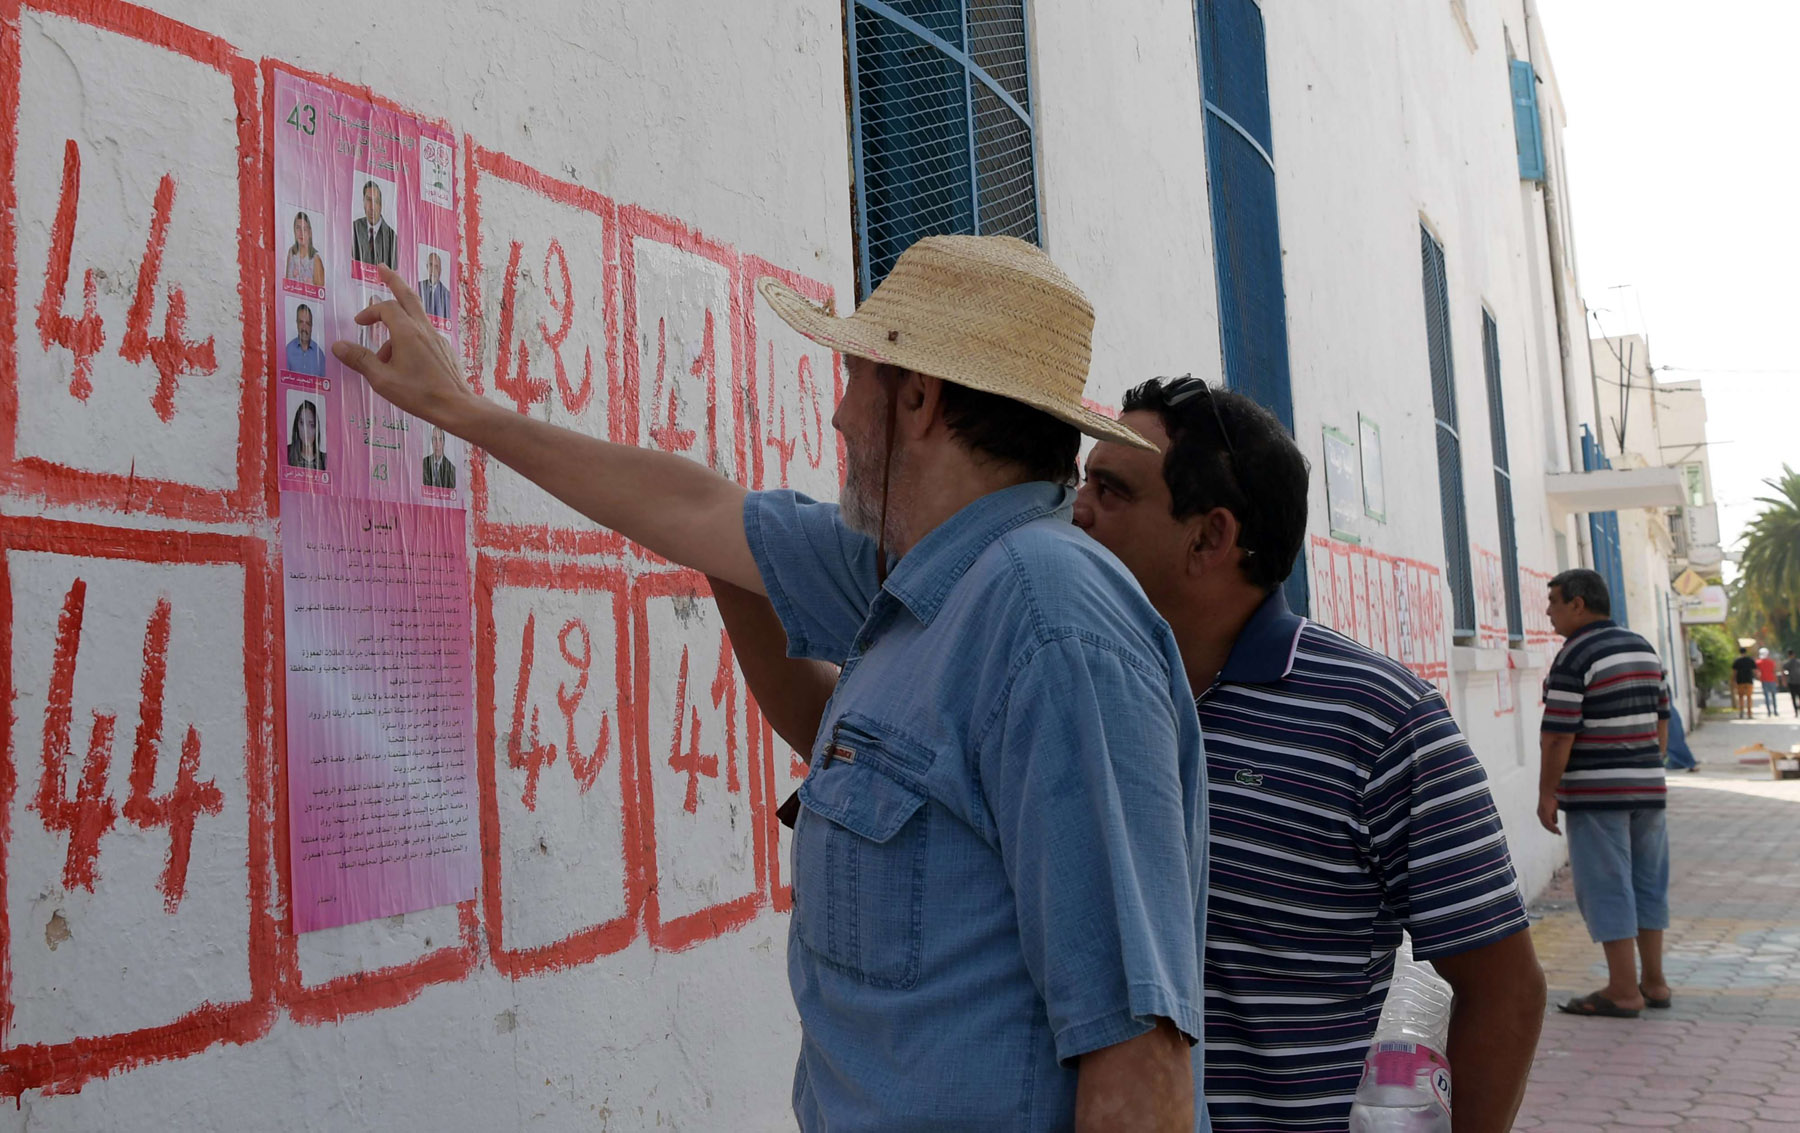 Tunisians consult lists of candidates for the upcoming legislative elections in Tunis. (AFP)